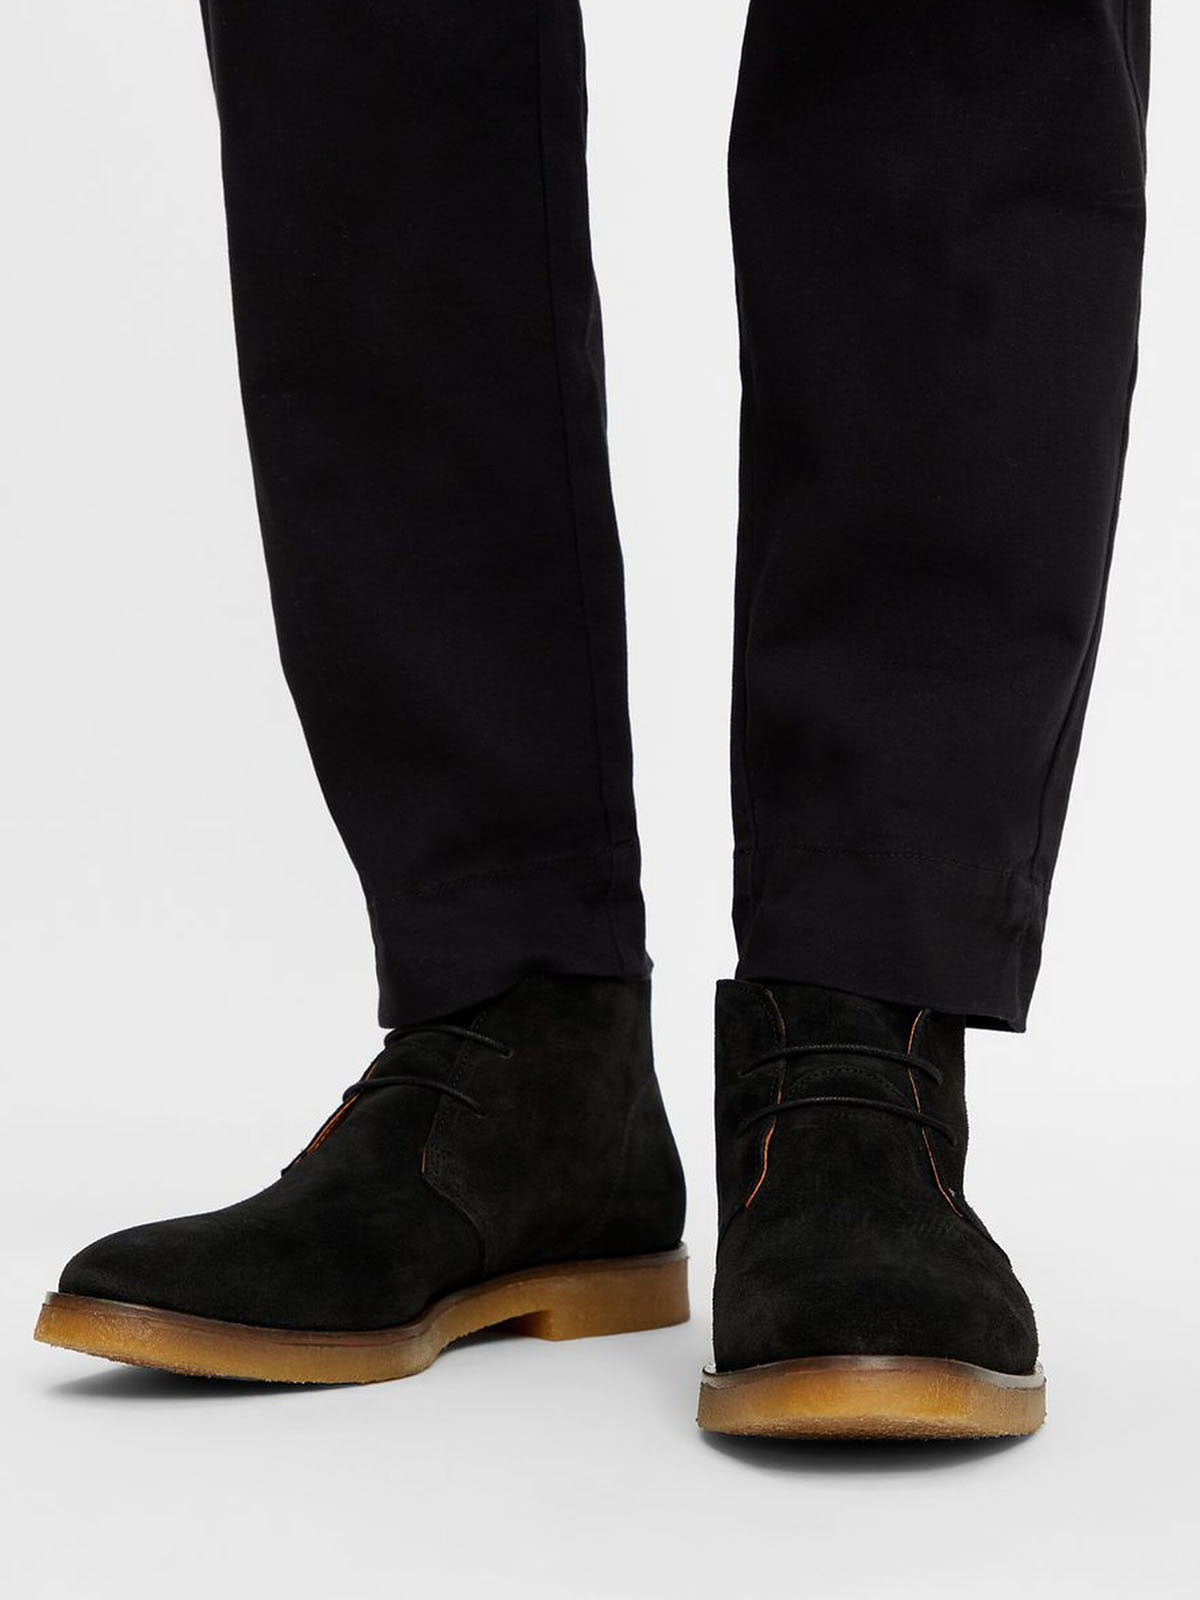 BIADINO Laced Up Boot - Black